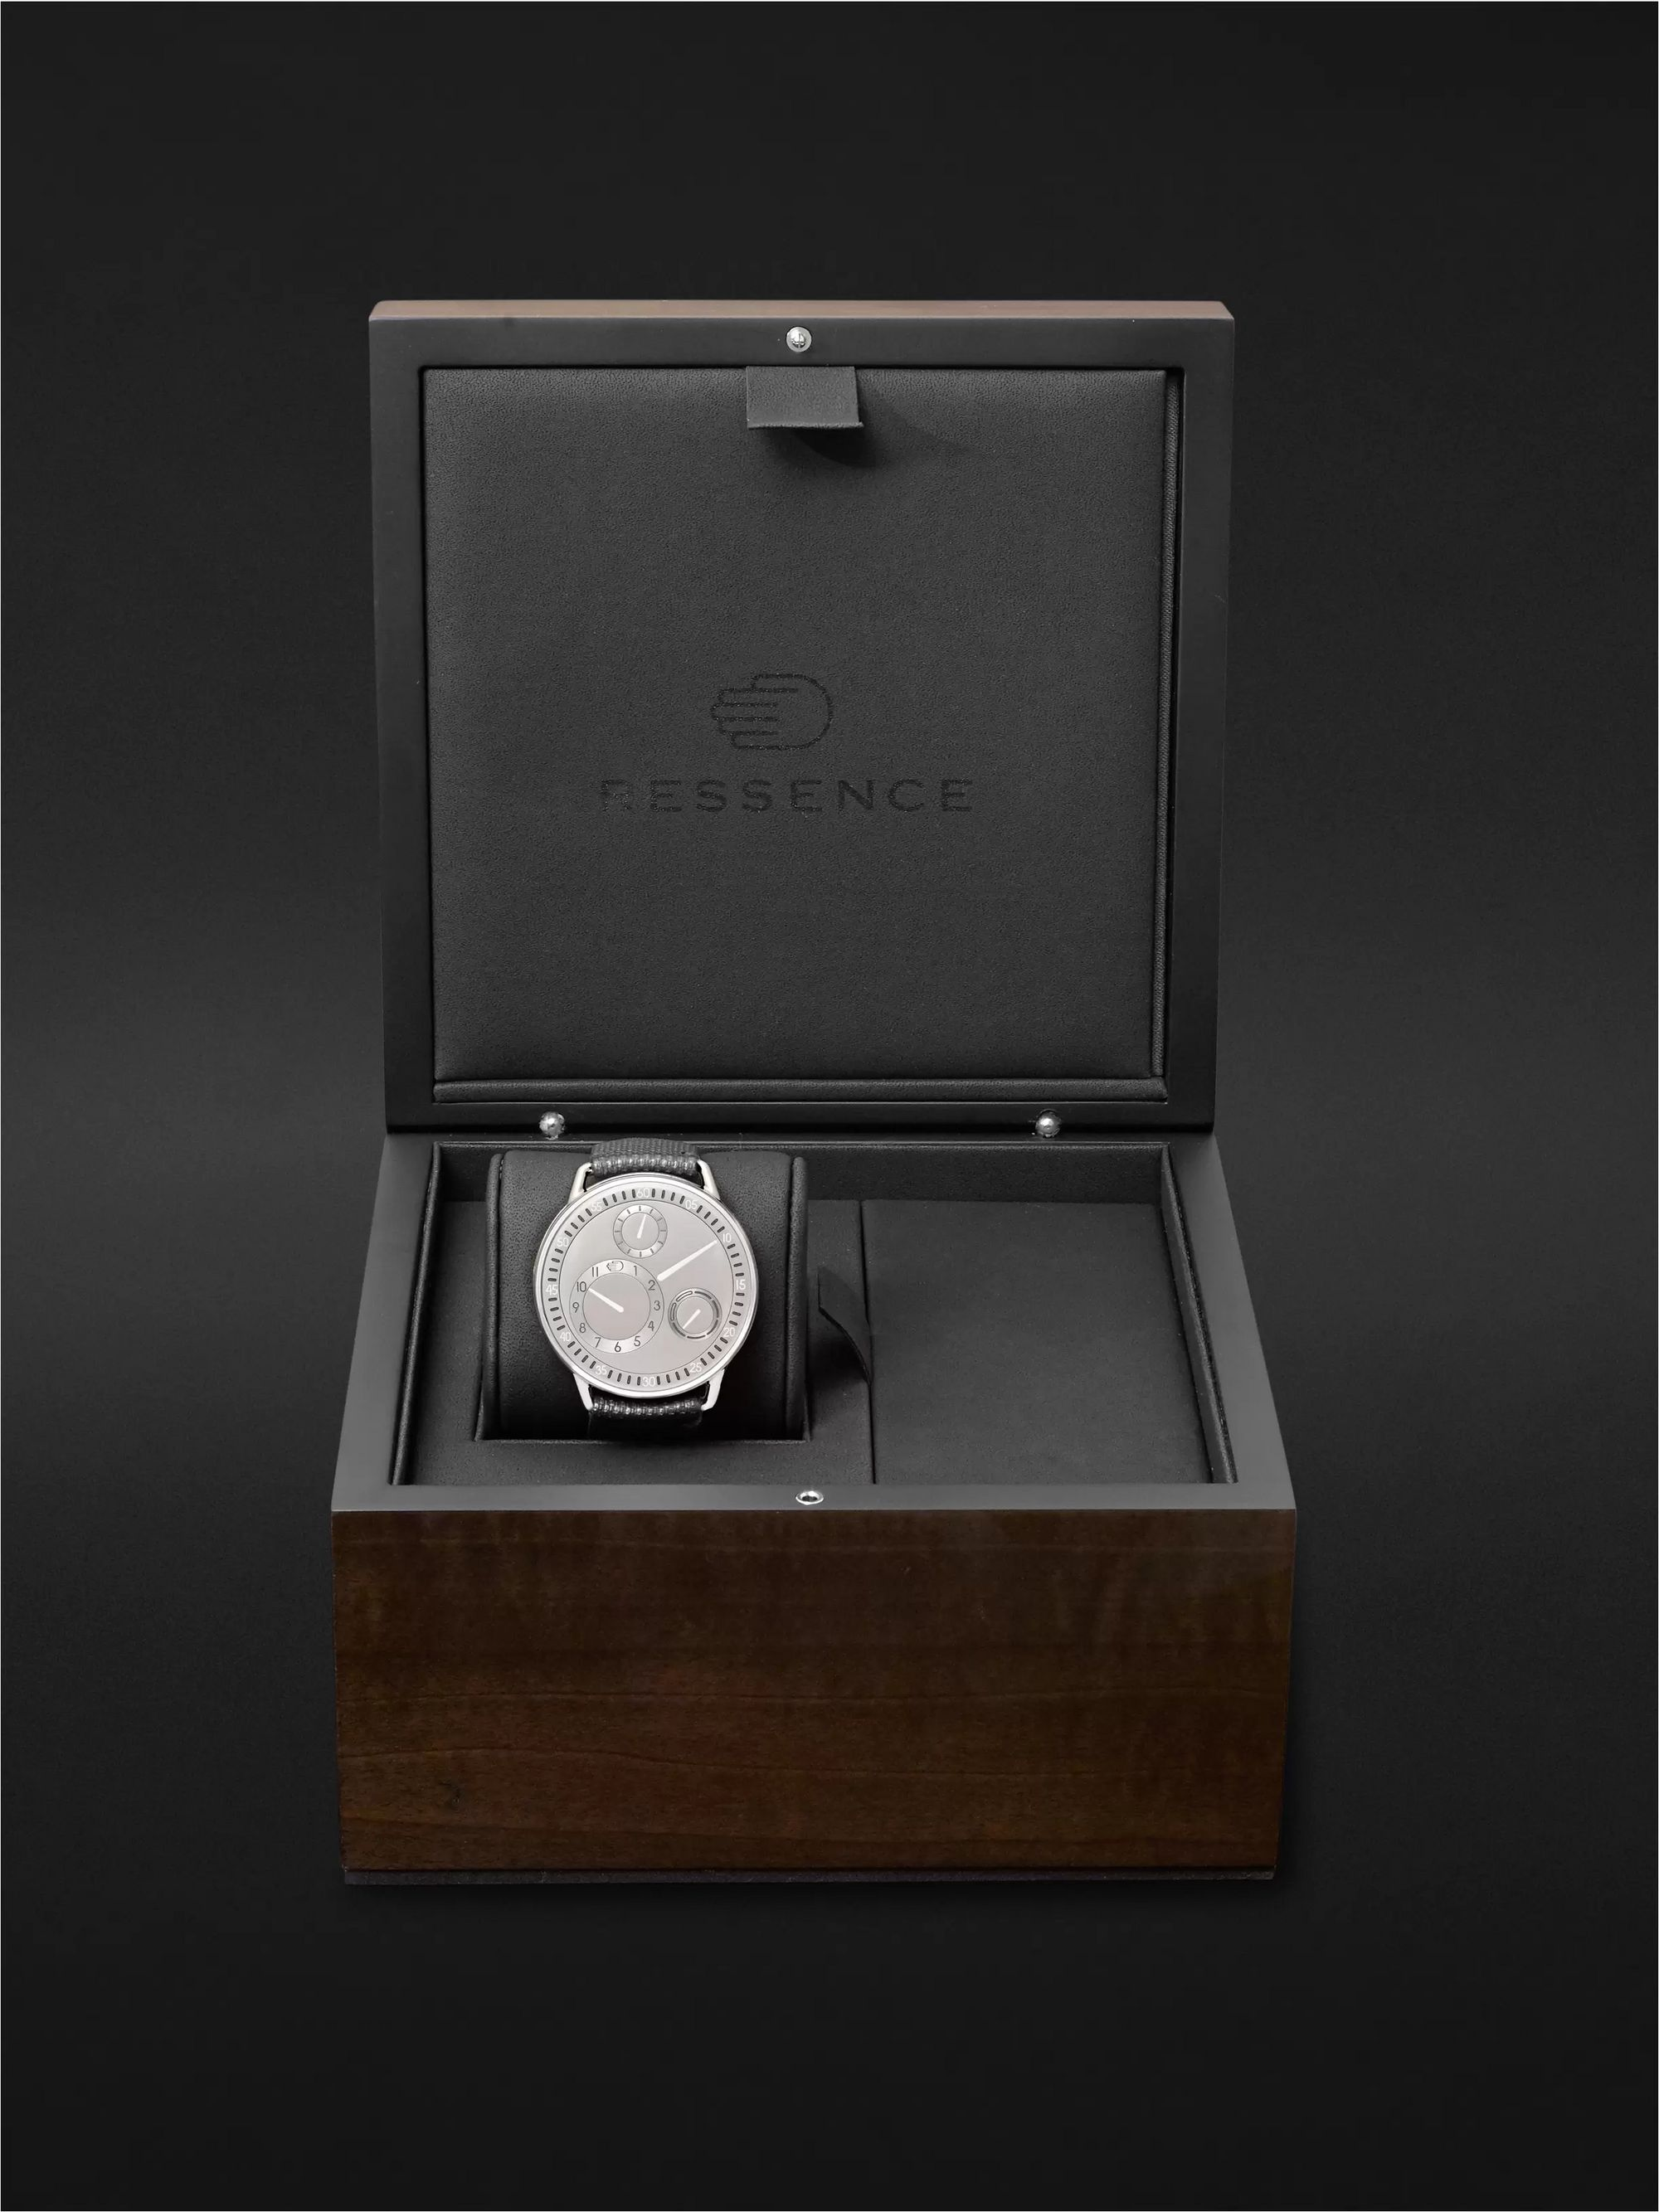 RESSENCE Type 1 Mechanical 42mm Titanium and Leather Watch, Ref. No. TYPE 1CH